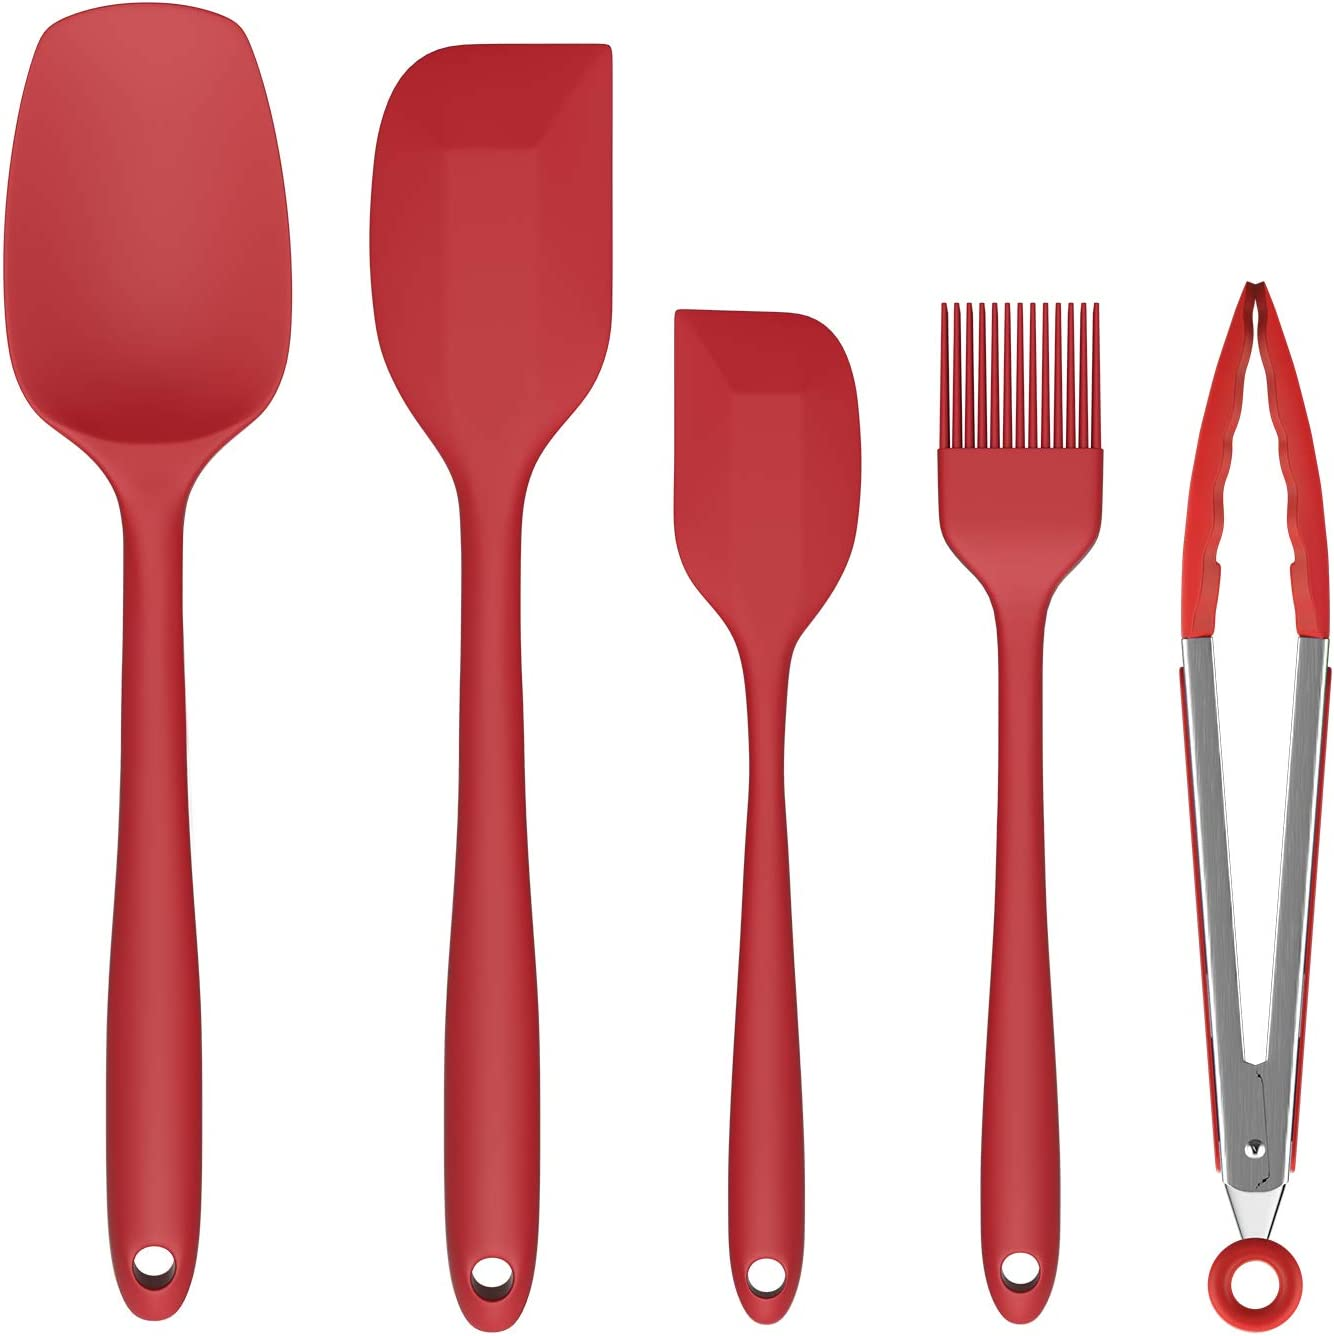 Spatula Set, Ouddy 5 Pieces Kitchen Utensils Silicone Spatula Set for Baking Cooking & Mixing, High Heat Resistant Food Grade Silicone Rubber Spatula Non-Stick Kitchen Spatula Dishwasher Safe - Red